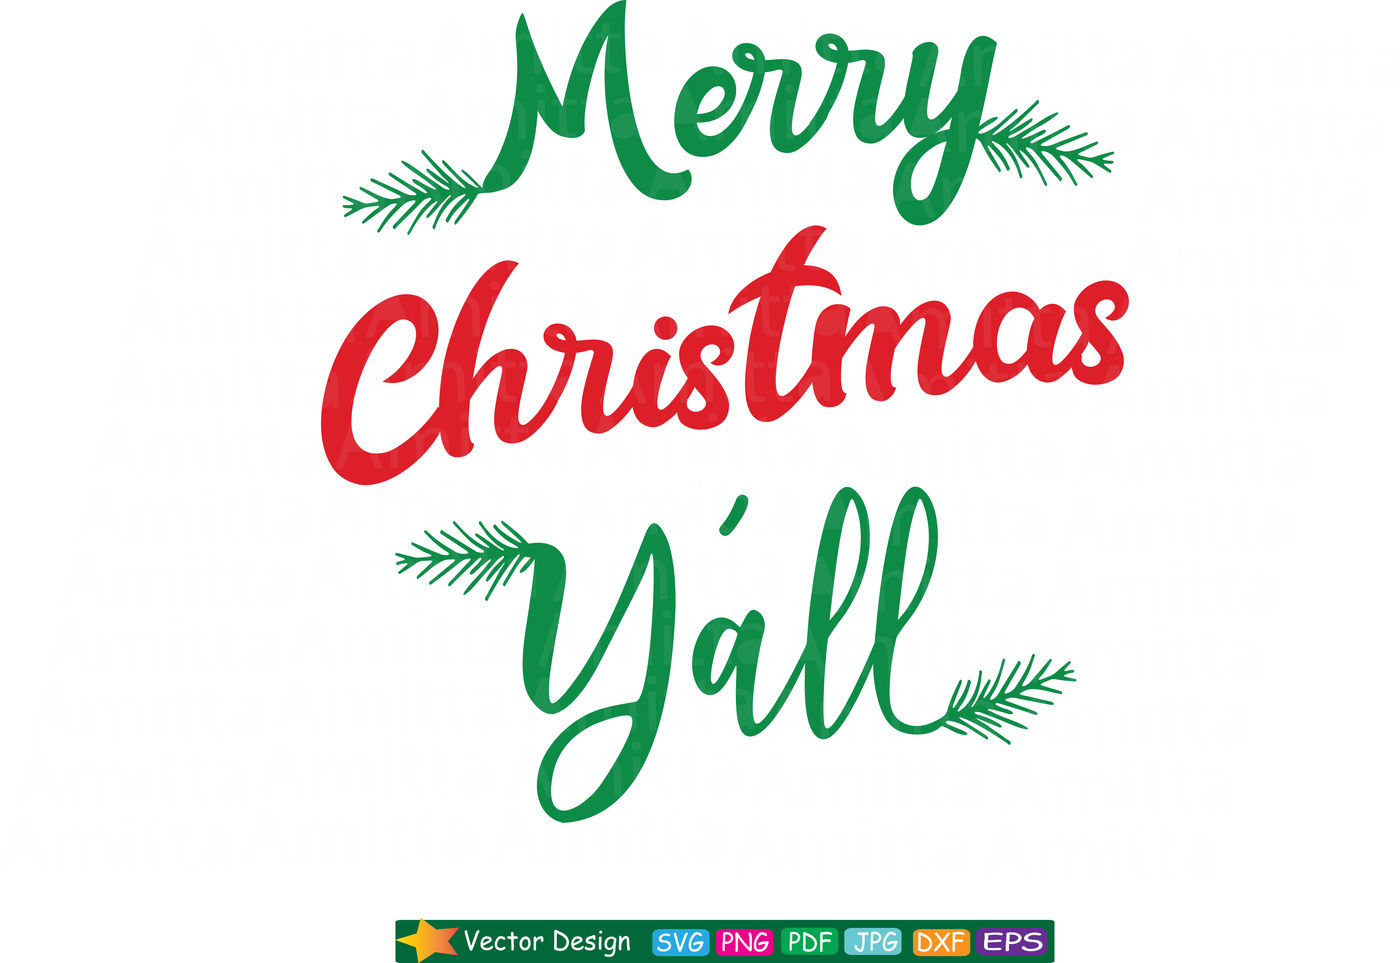 Merry Christmas Y All Svg Cut File By Amittaart Thehungryjpeg Com